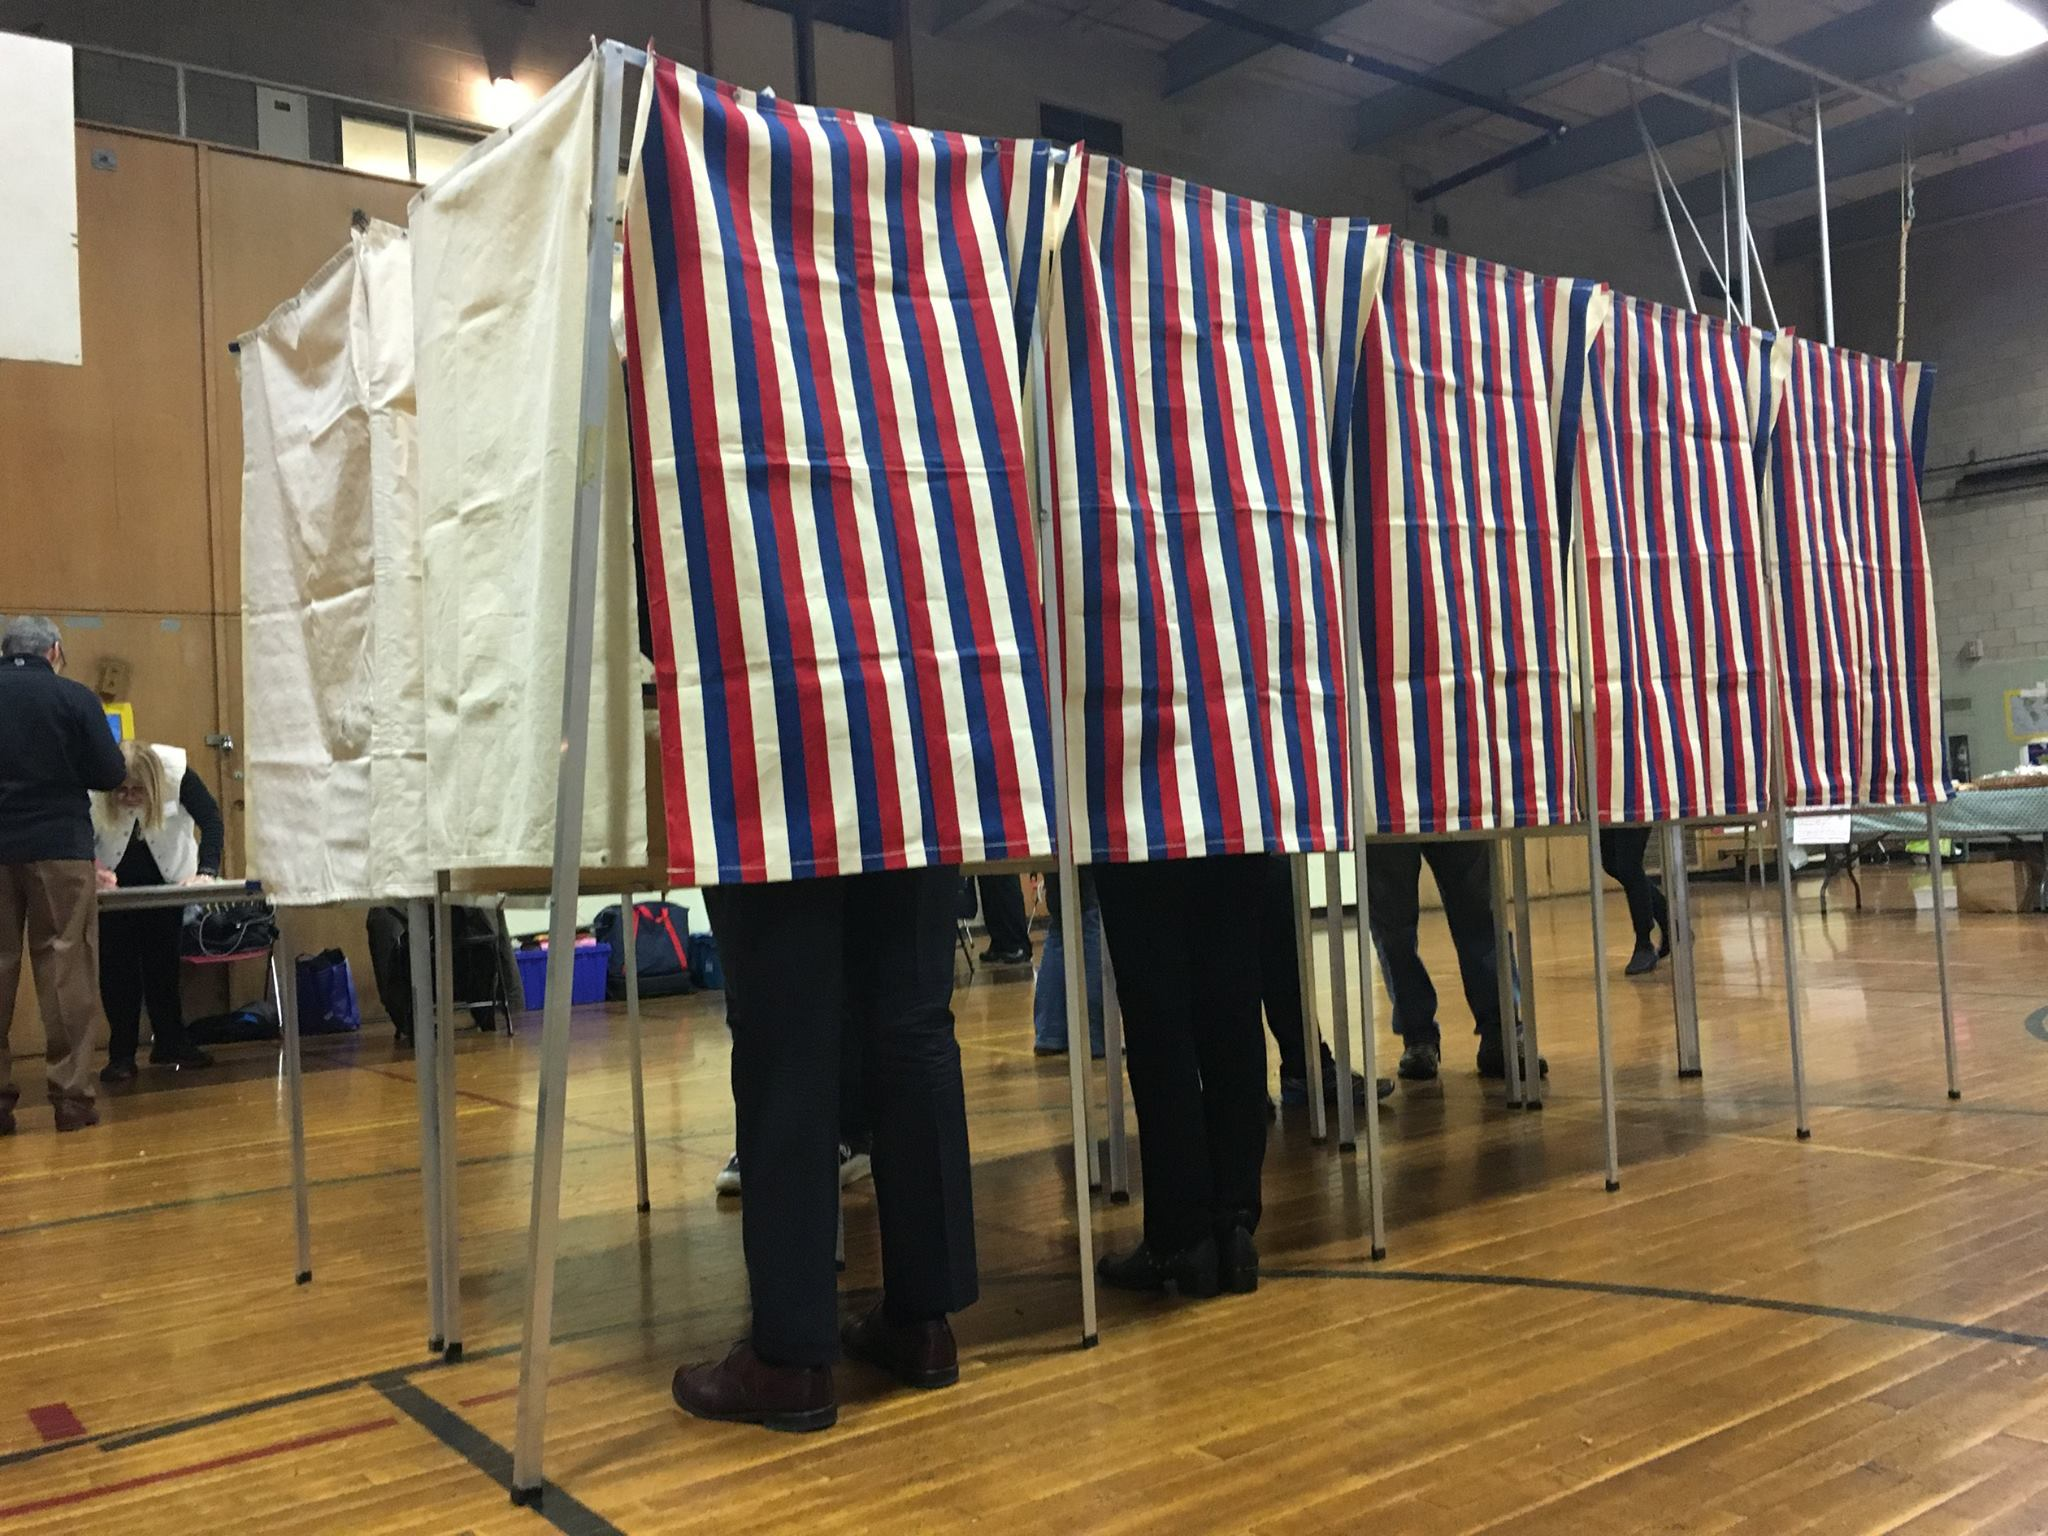 People standing in voting booths with striped curtains